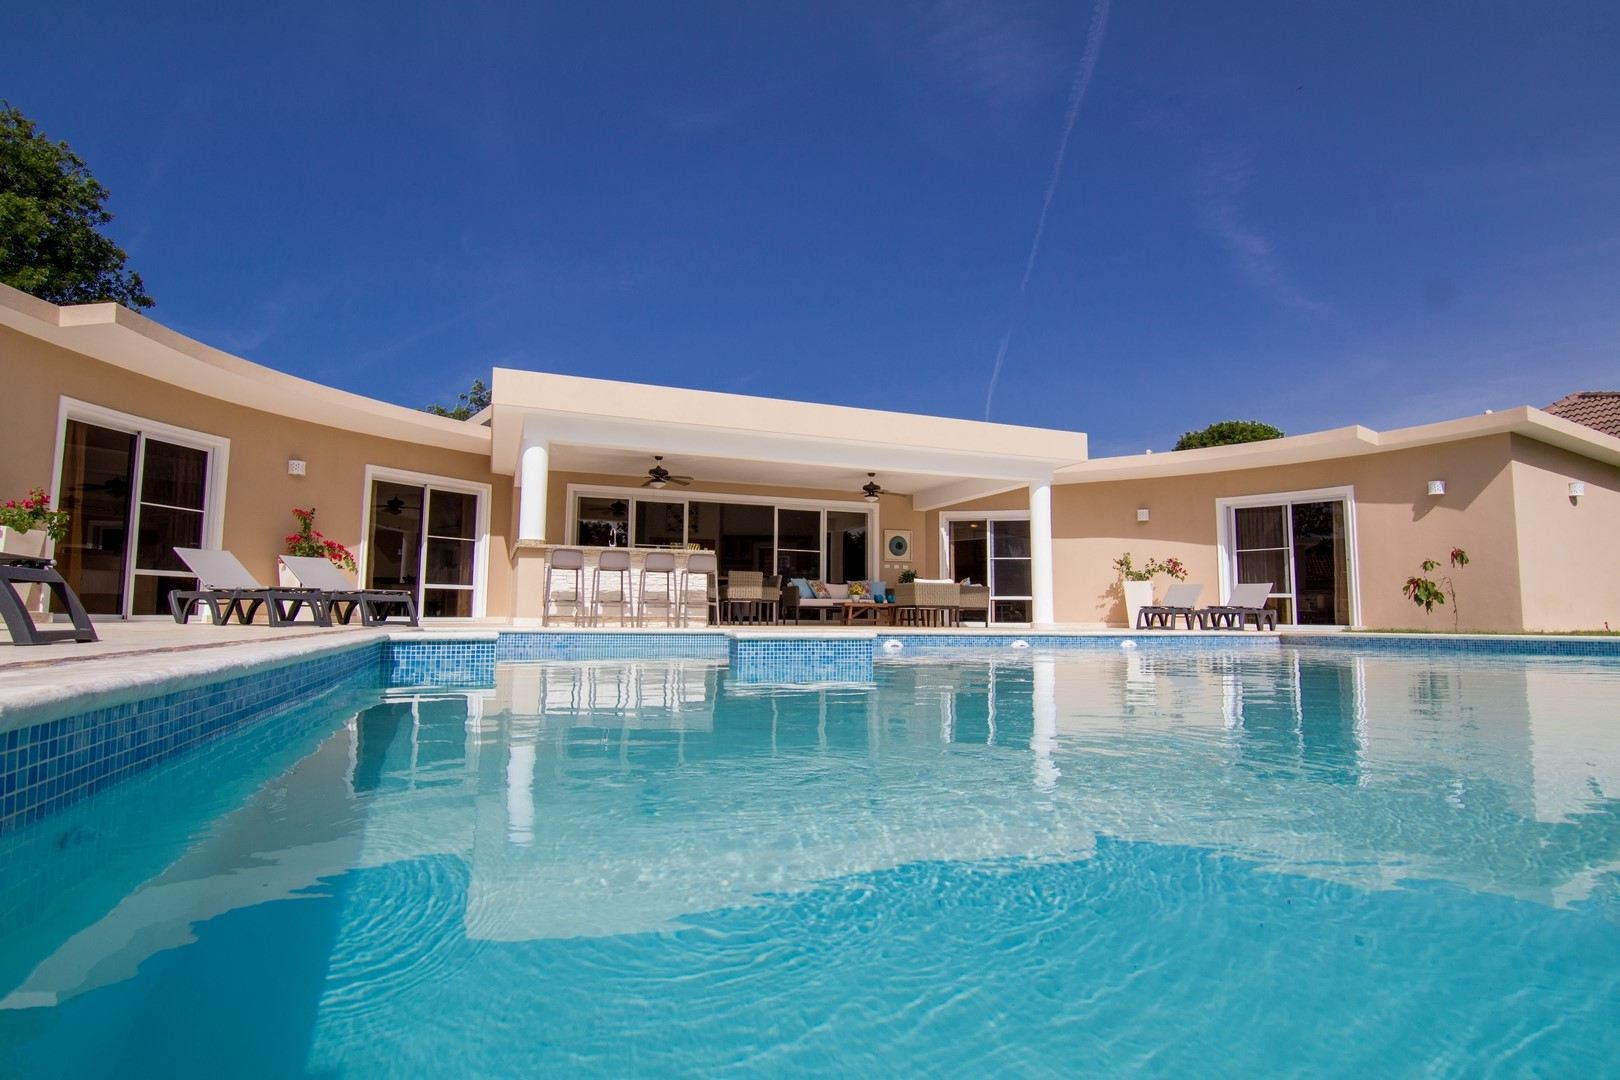 4 Bedrooms Vacation Villa in Sosua, DR